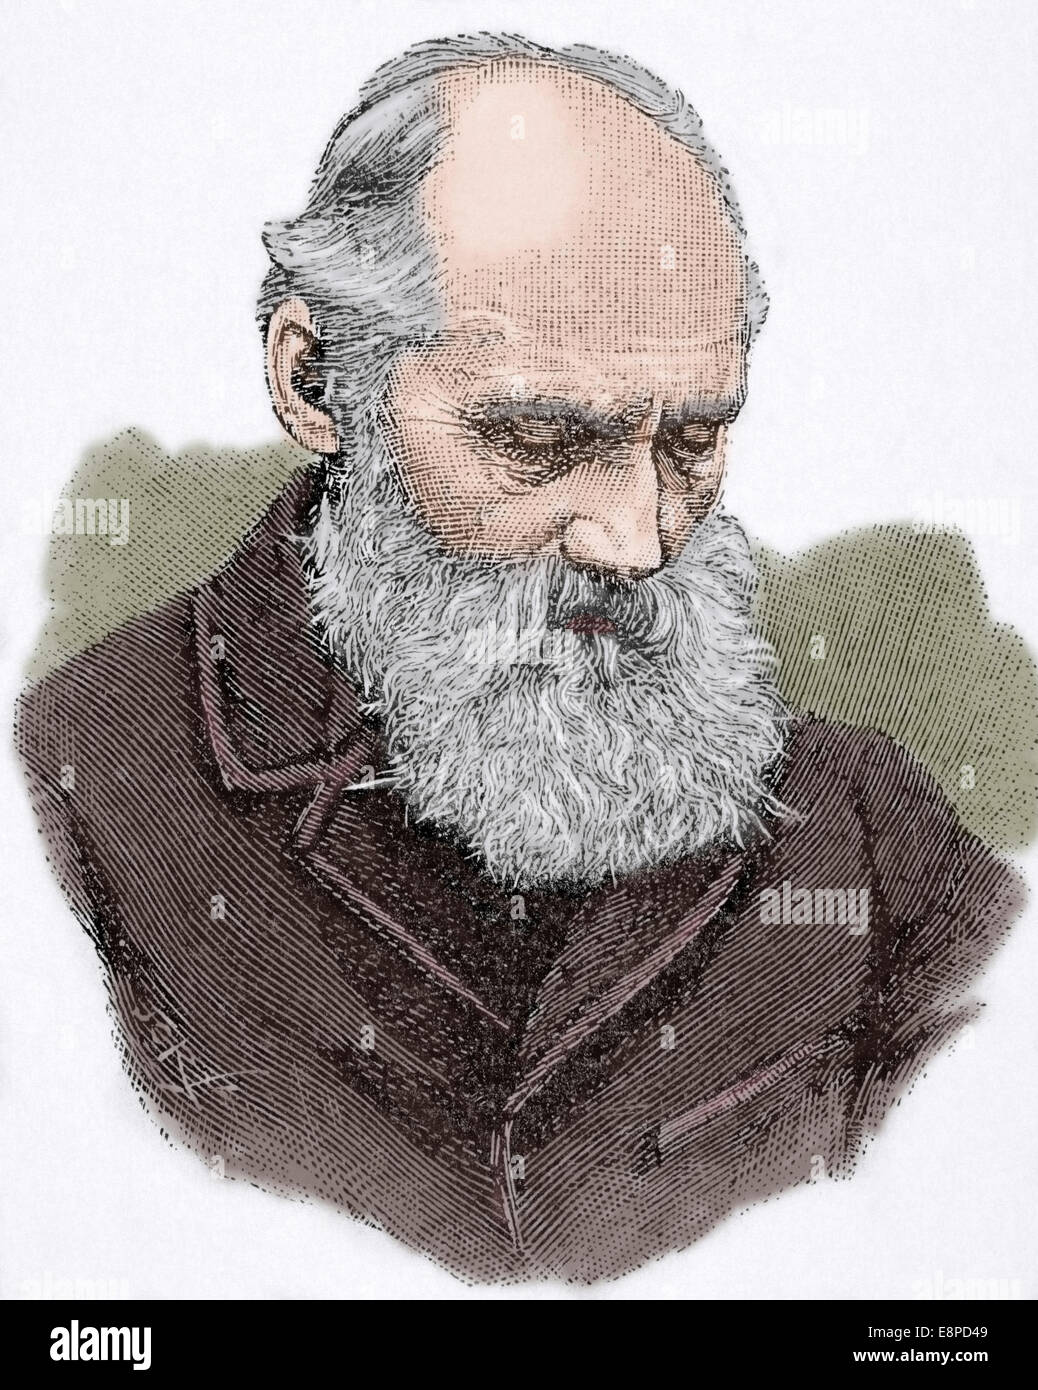 William Thomson, 1st Baron Kelvin (1824 -1907). British physicist and mathematician. Engraving. Colored. - Stock Image